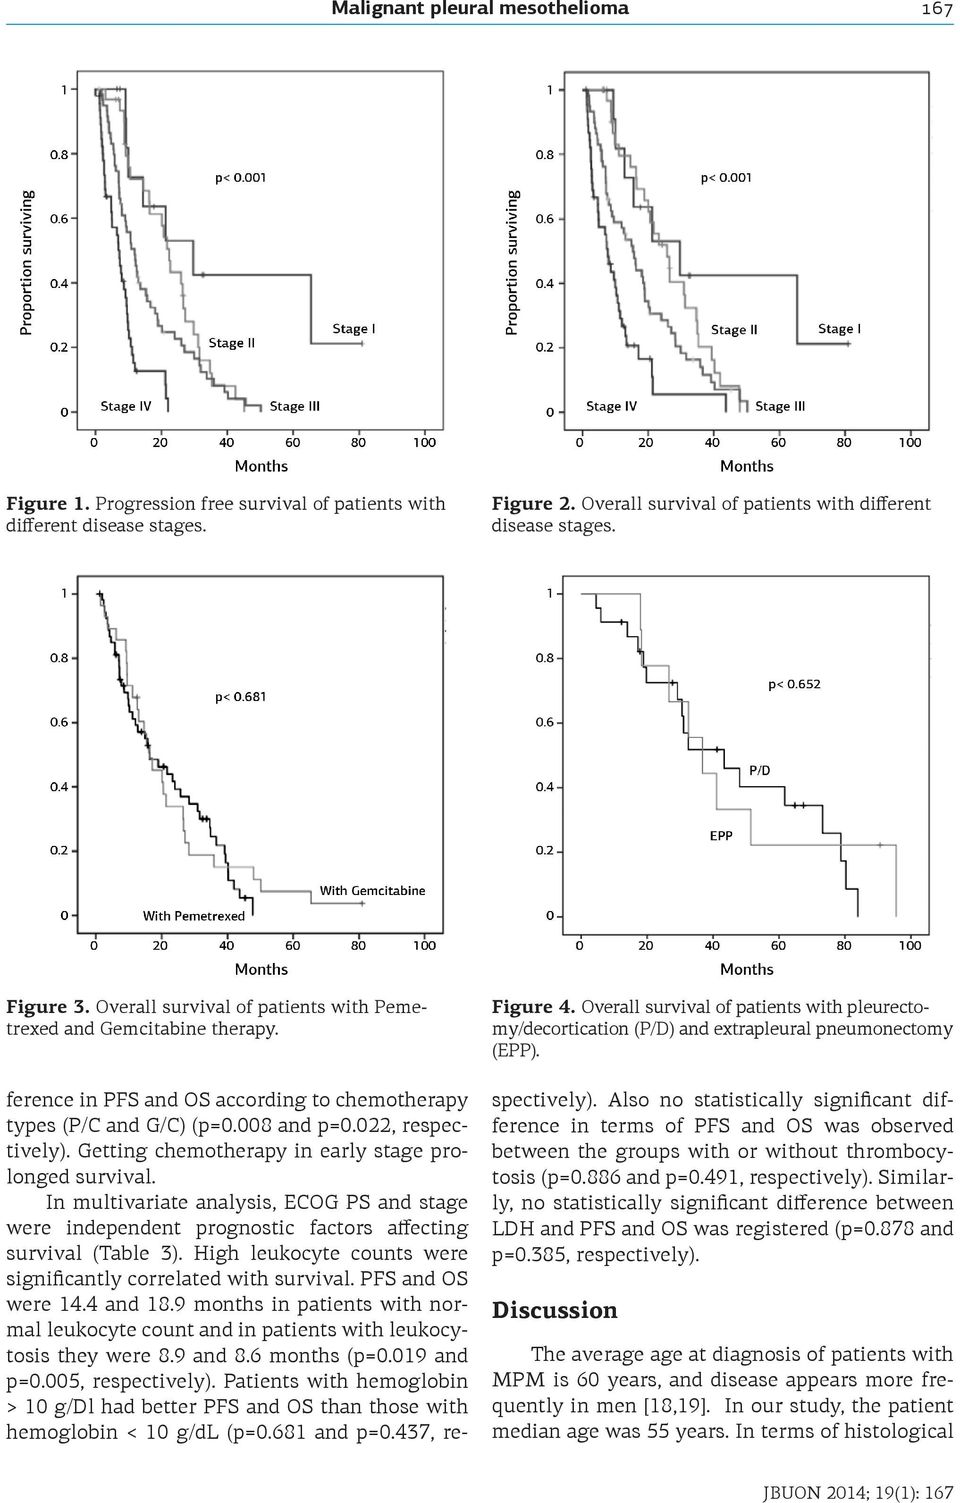 ference in PFS and OS according to chemotherapy types (P/C and G/C) (p=0.008 and p=0.022, respectively). Getting chemotherapy in early stage prolonged survival.